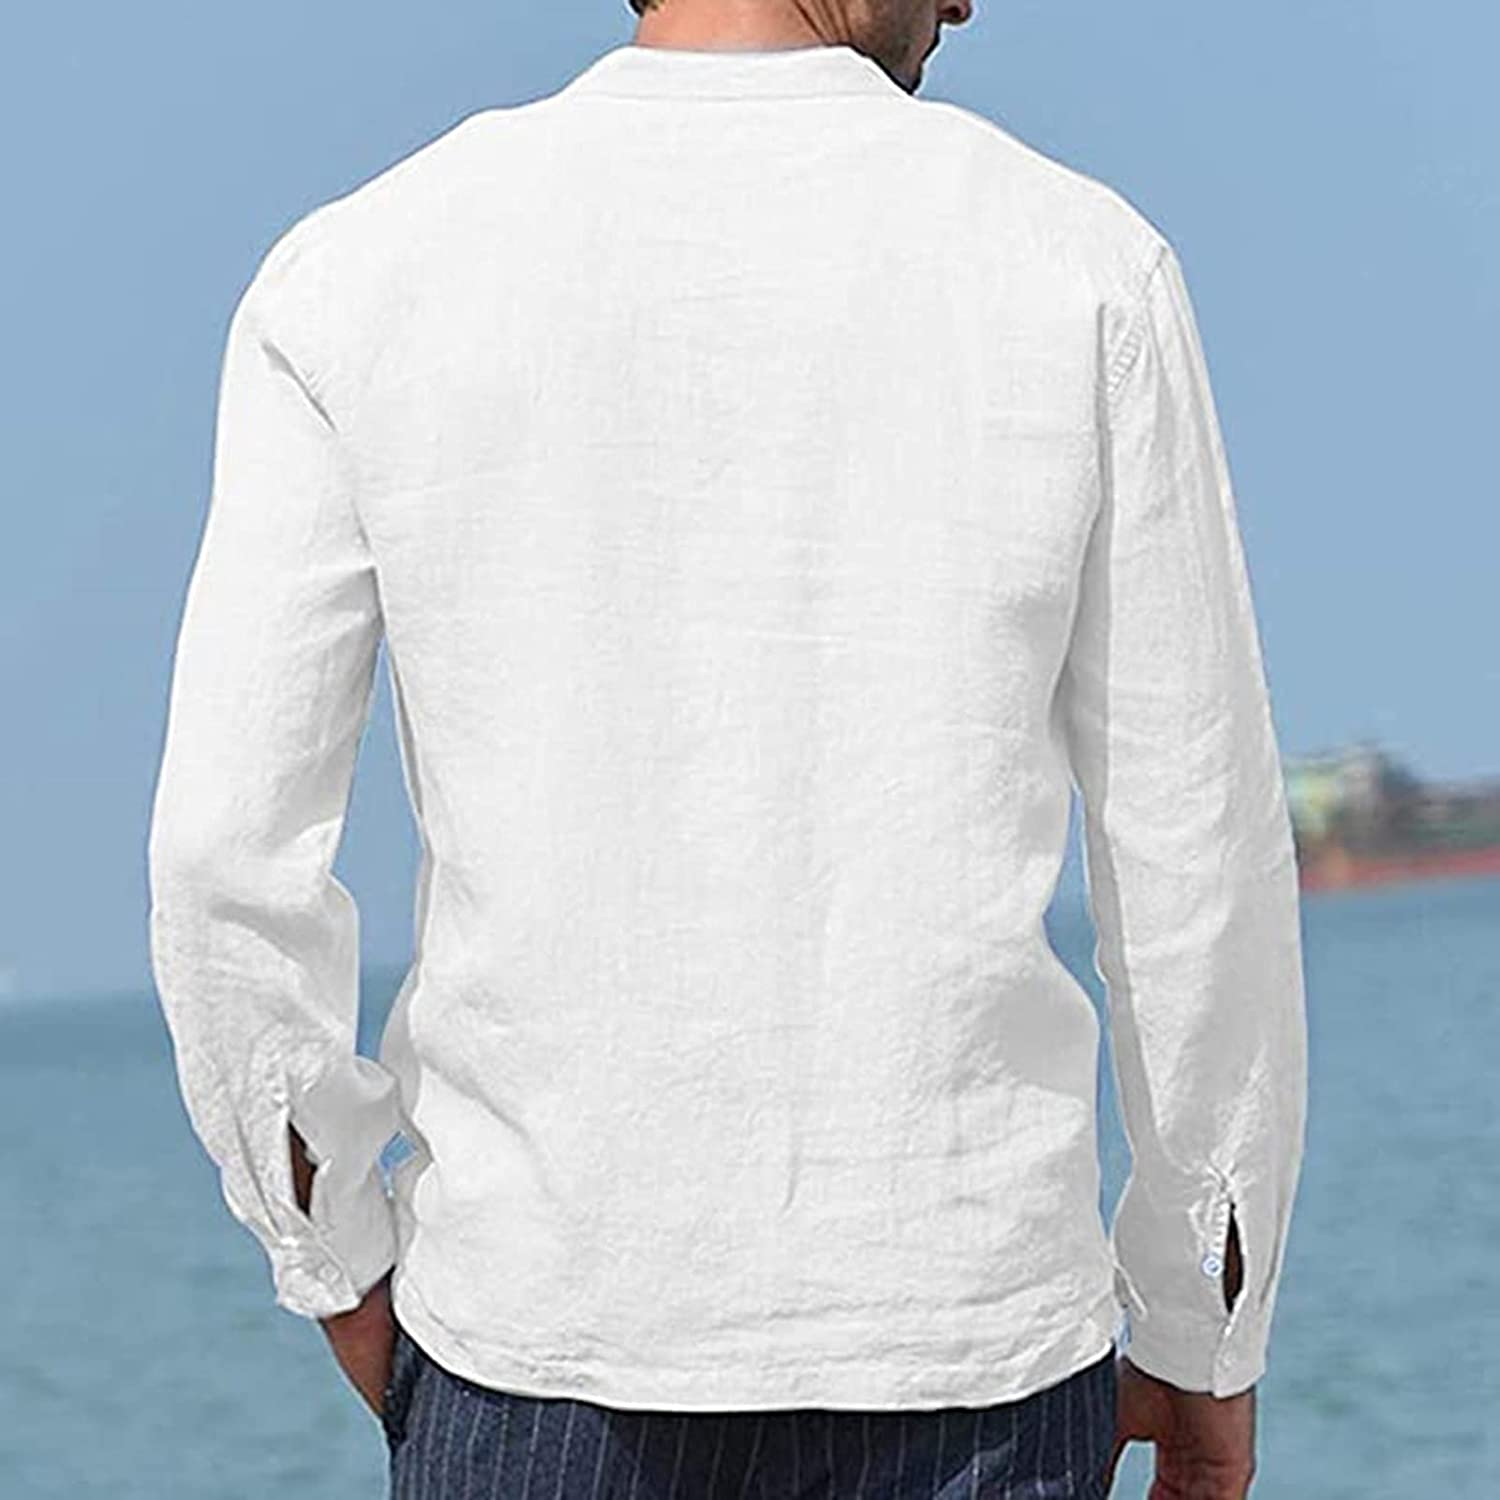 Rela Bota Men's Fashion Cotton Linen Henley Shirts Lightweight Solid Color Casual Beach Shirts with Pocket